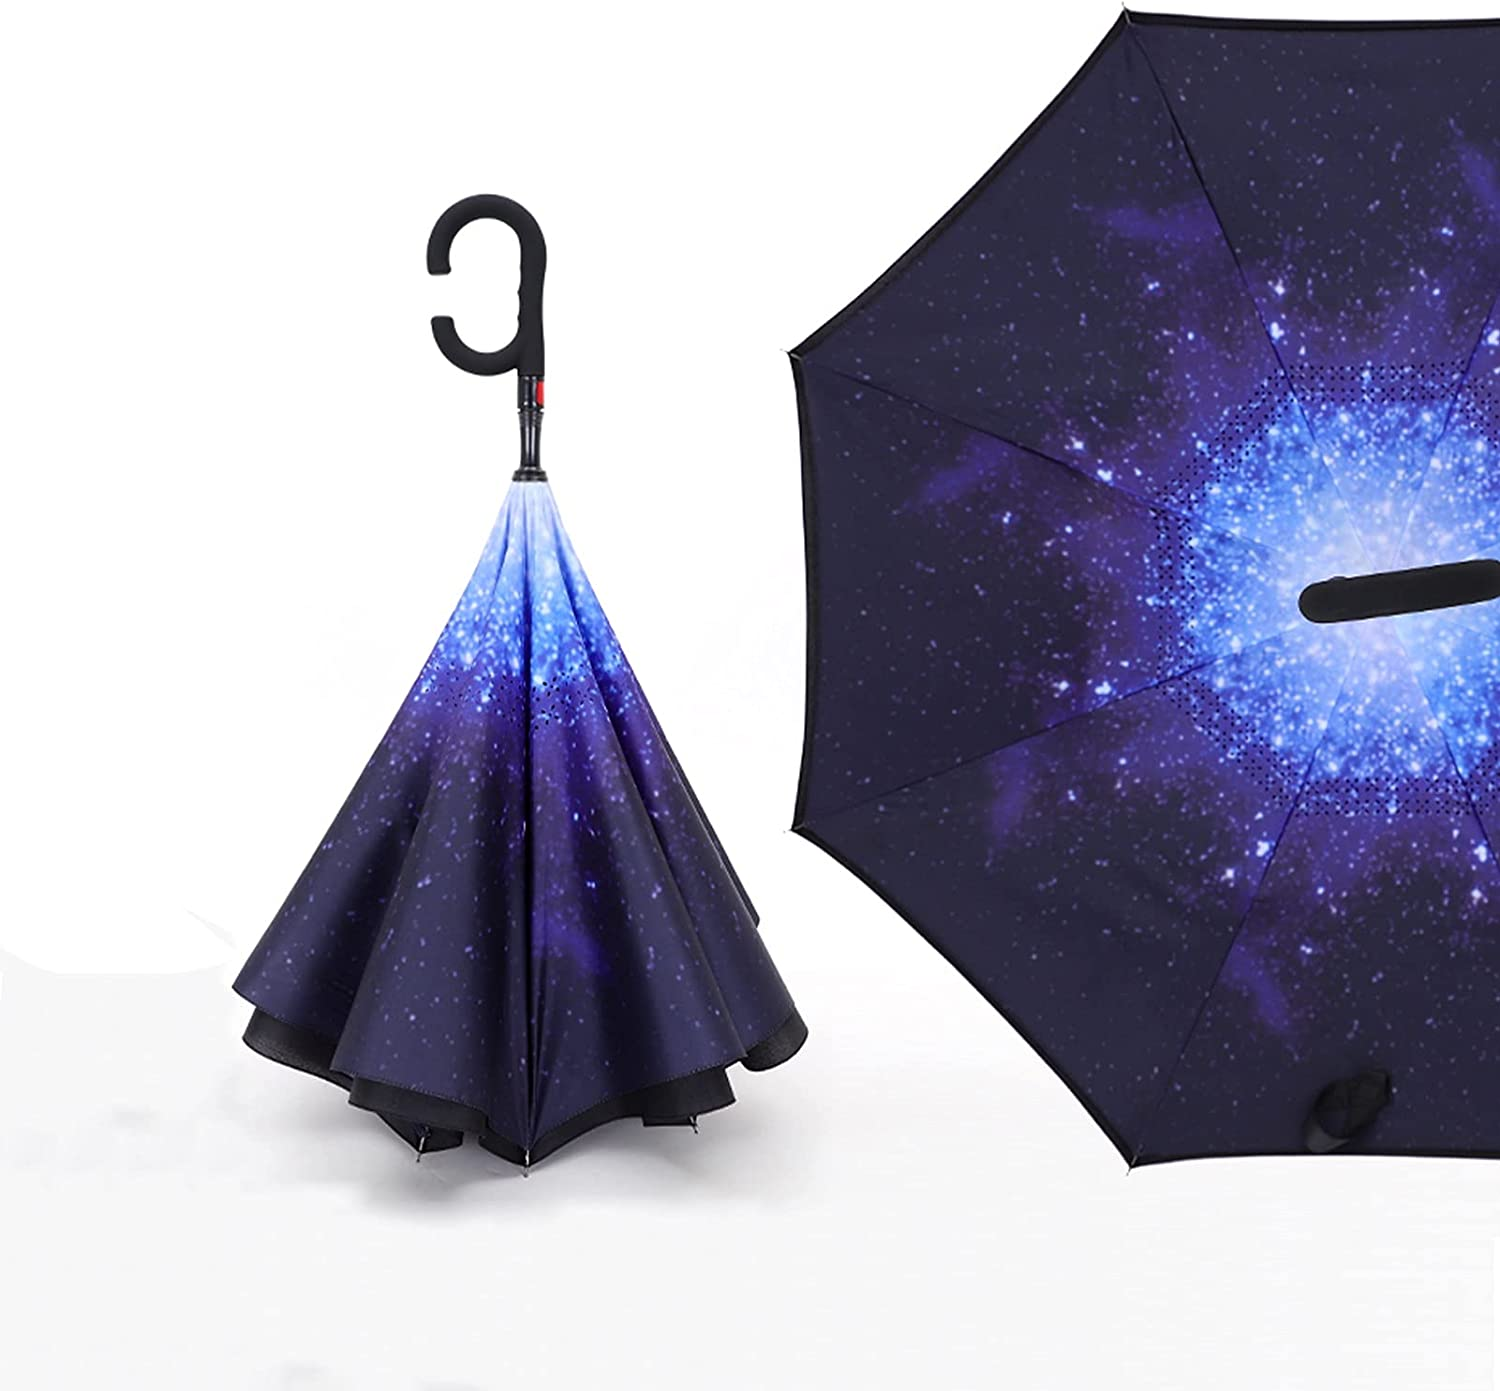 Yuansr All items in the store Double-Layer Reverse Umbrella Vehi Oversized Max 76% OFF for